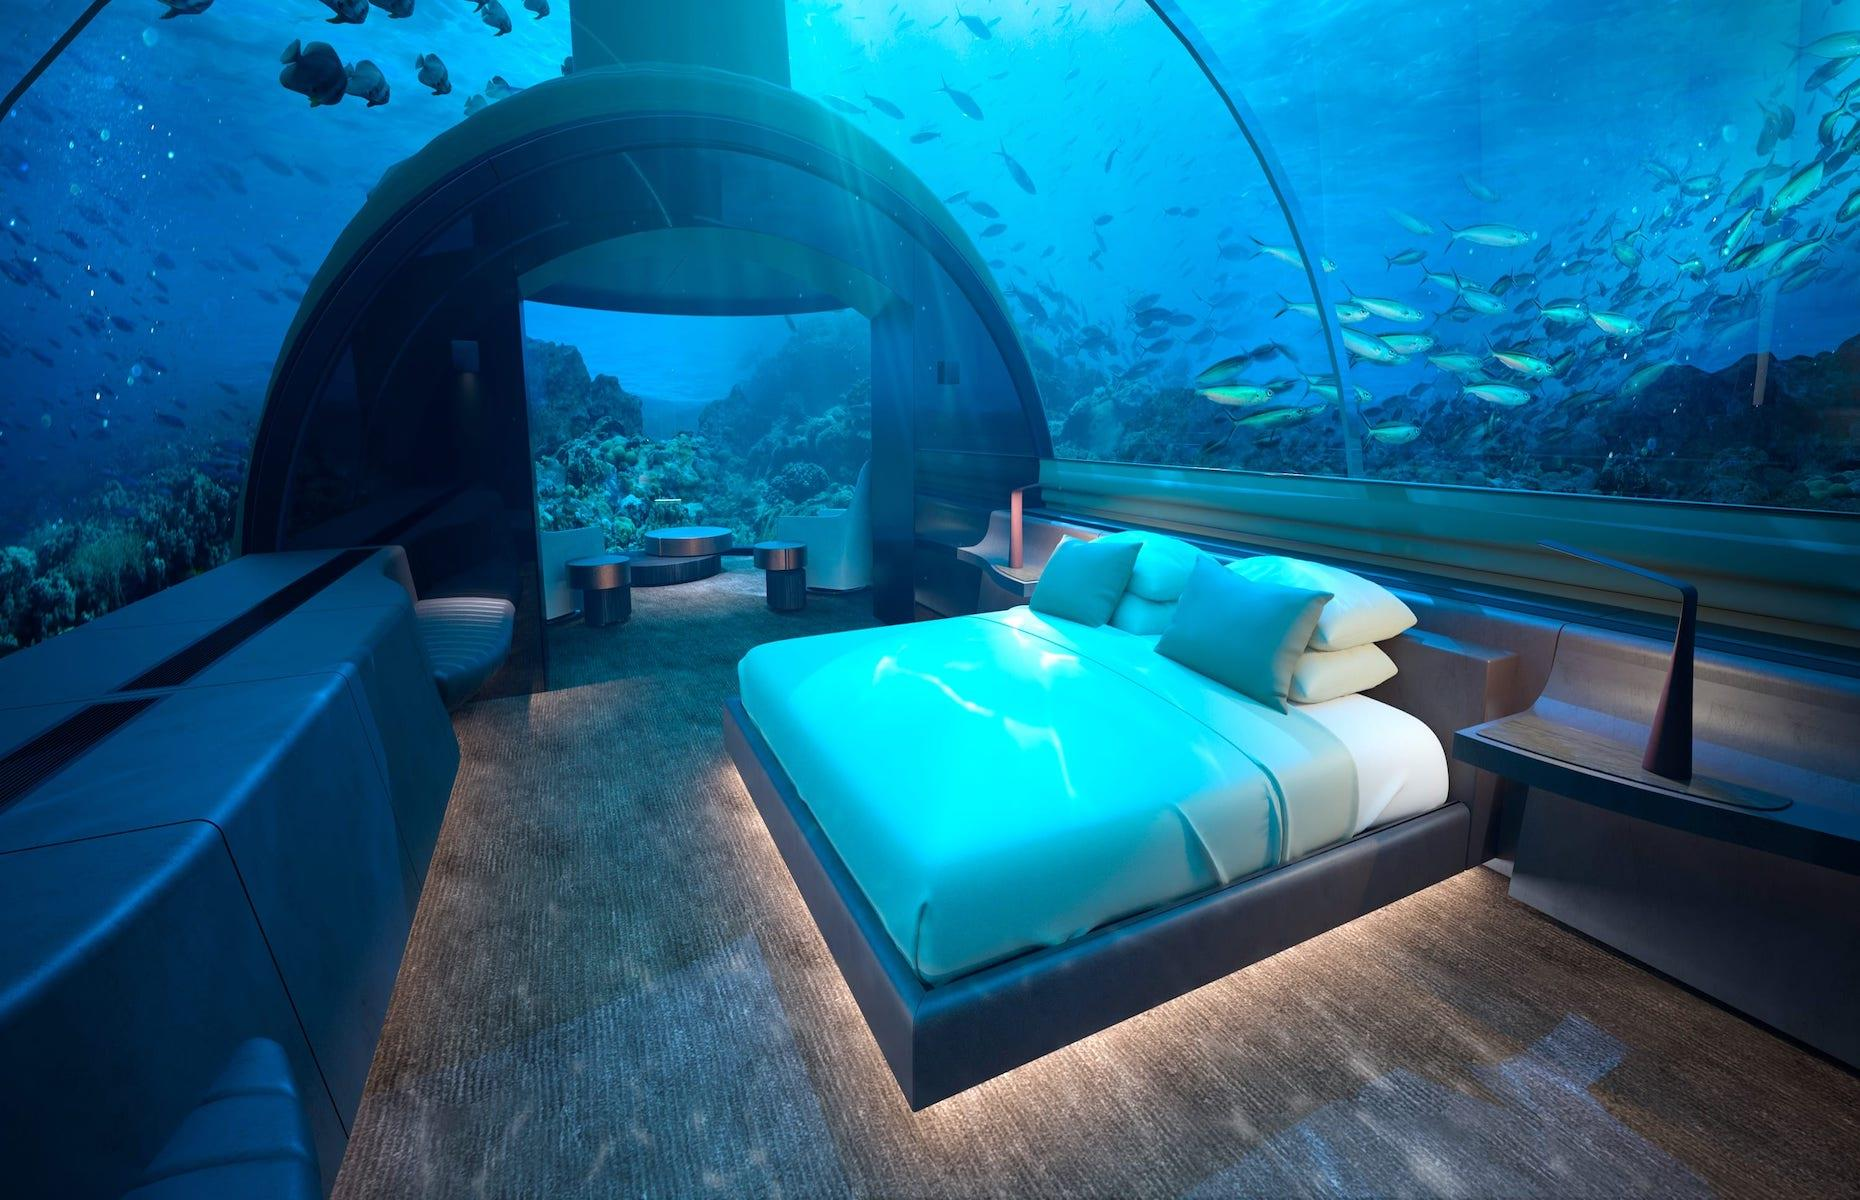 Slide 1 of 24: From futuristic chambers attached to the seabed to serene suites with vast windows looking out onto fish-filled aquariums, there are some out-of-this-world underwater hotel rooms that are well worth diving into. Although we can't travel to most of them right now, read on for a serious dose of armchair travel and wanderlust.